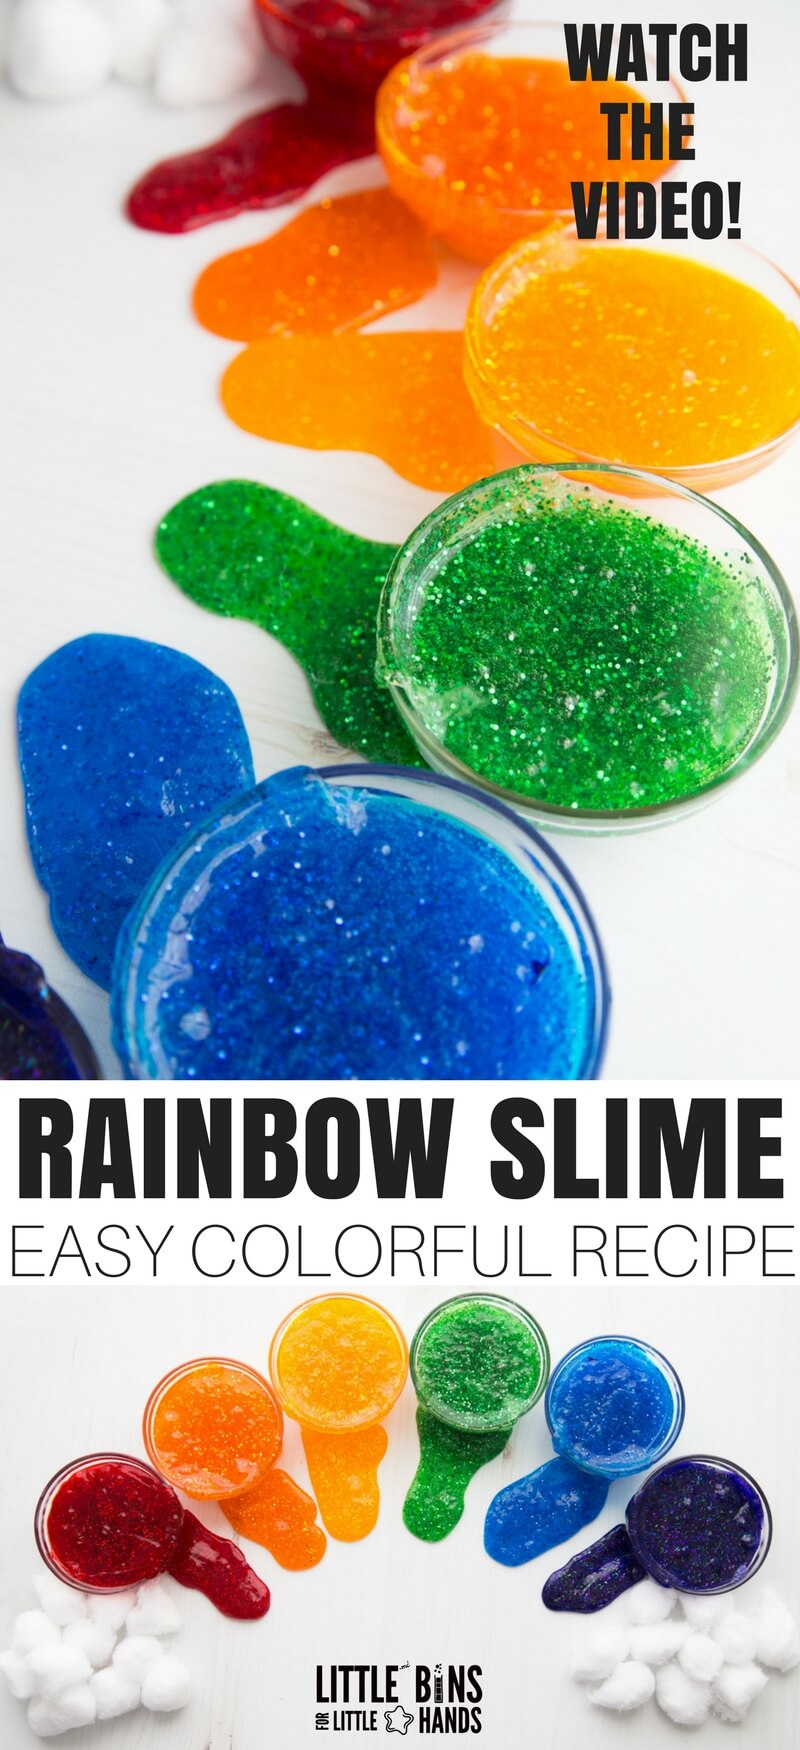 rainbow slime recipe for kids to make easy homemade slime in a rainbow of colors